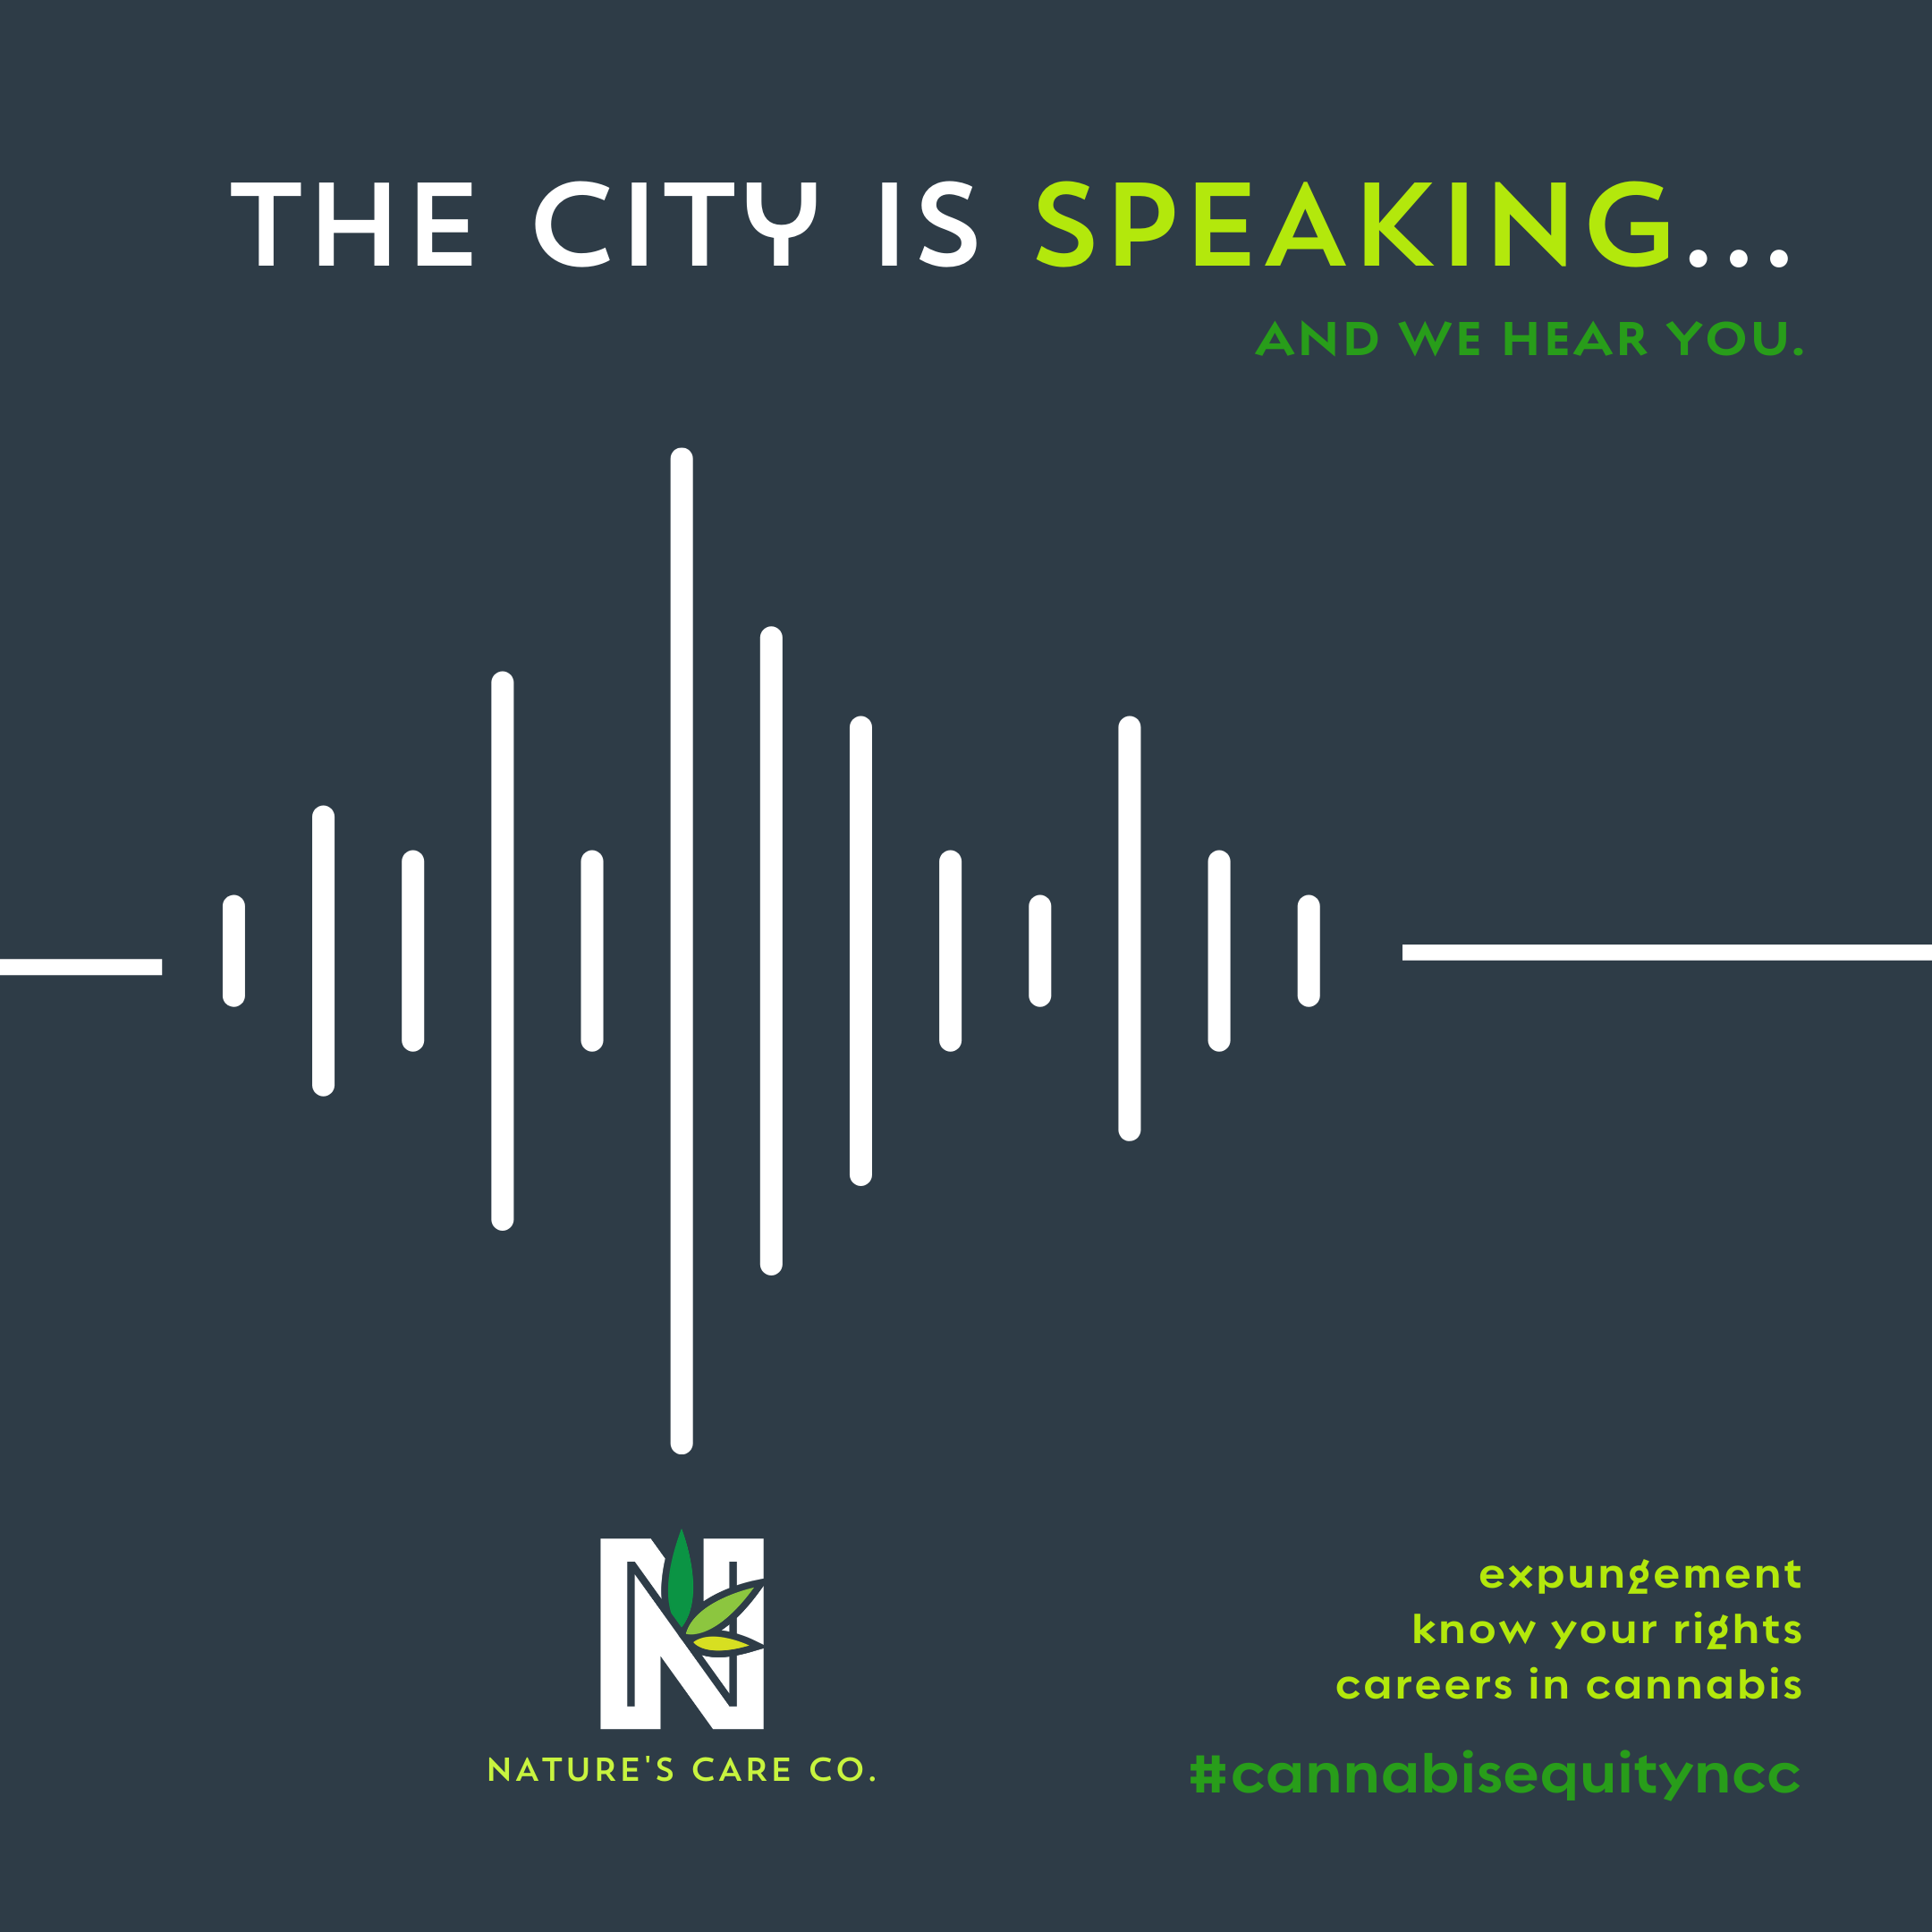 """Nature's Care Company (""""Nature's Care""""): The City is Speaking. And We Hear You."""